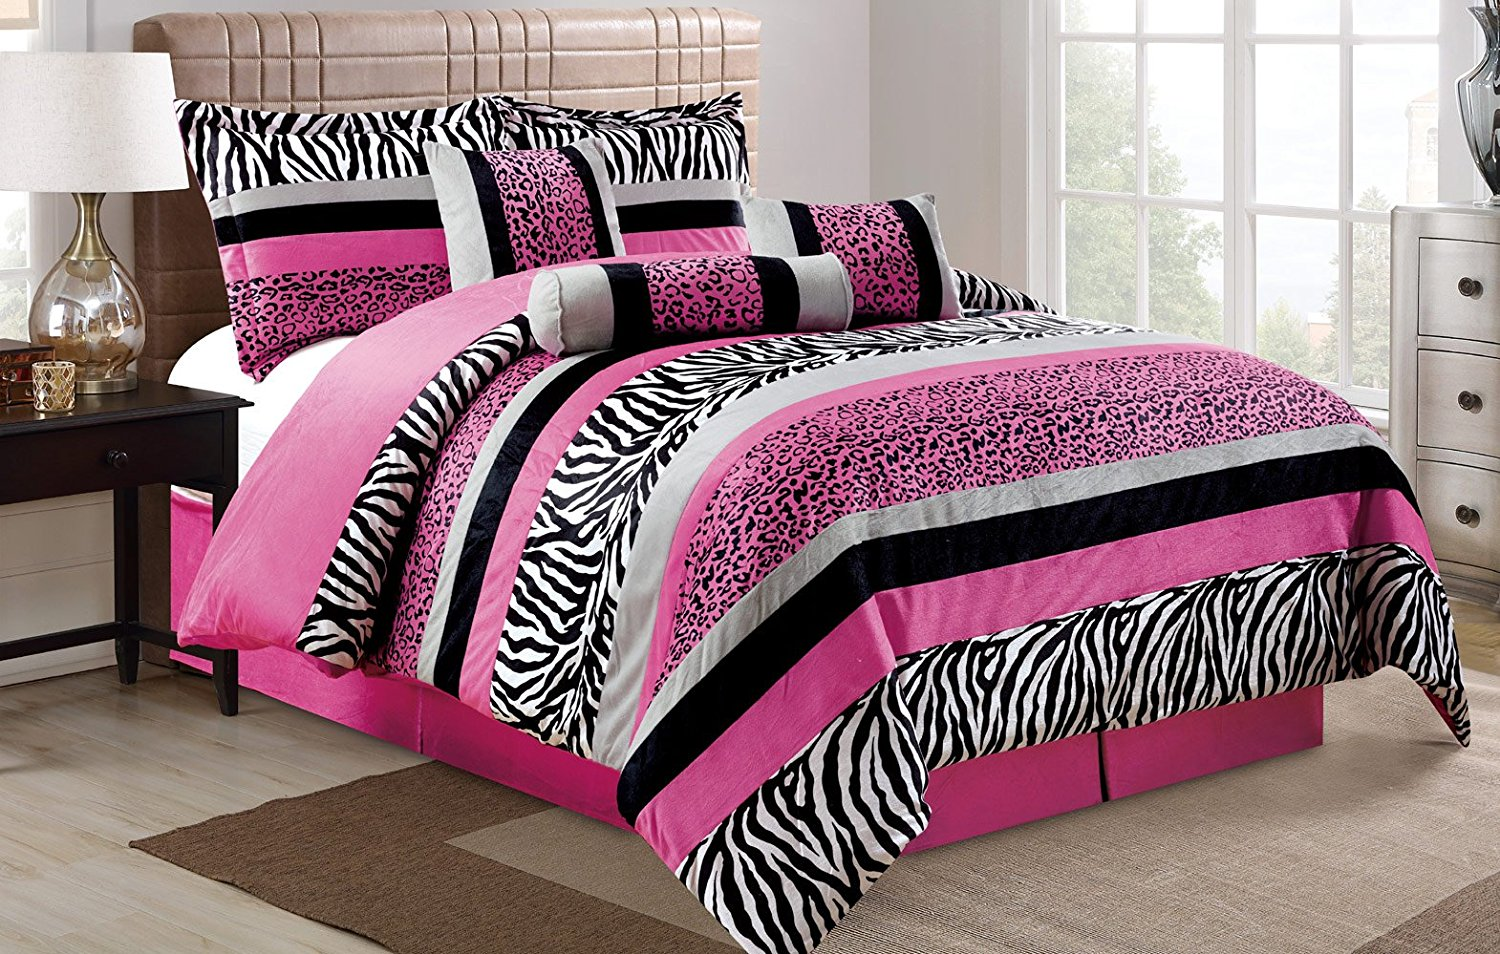 Pink And Black Zebra Bedding Review Comfort In Color